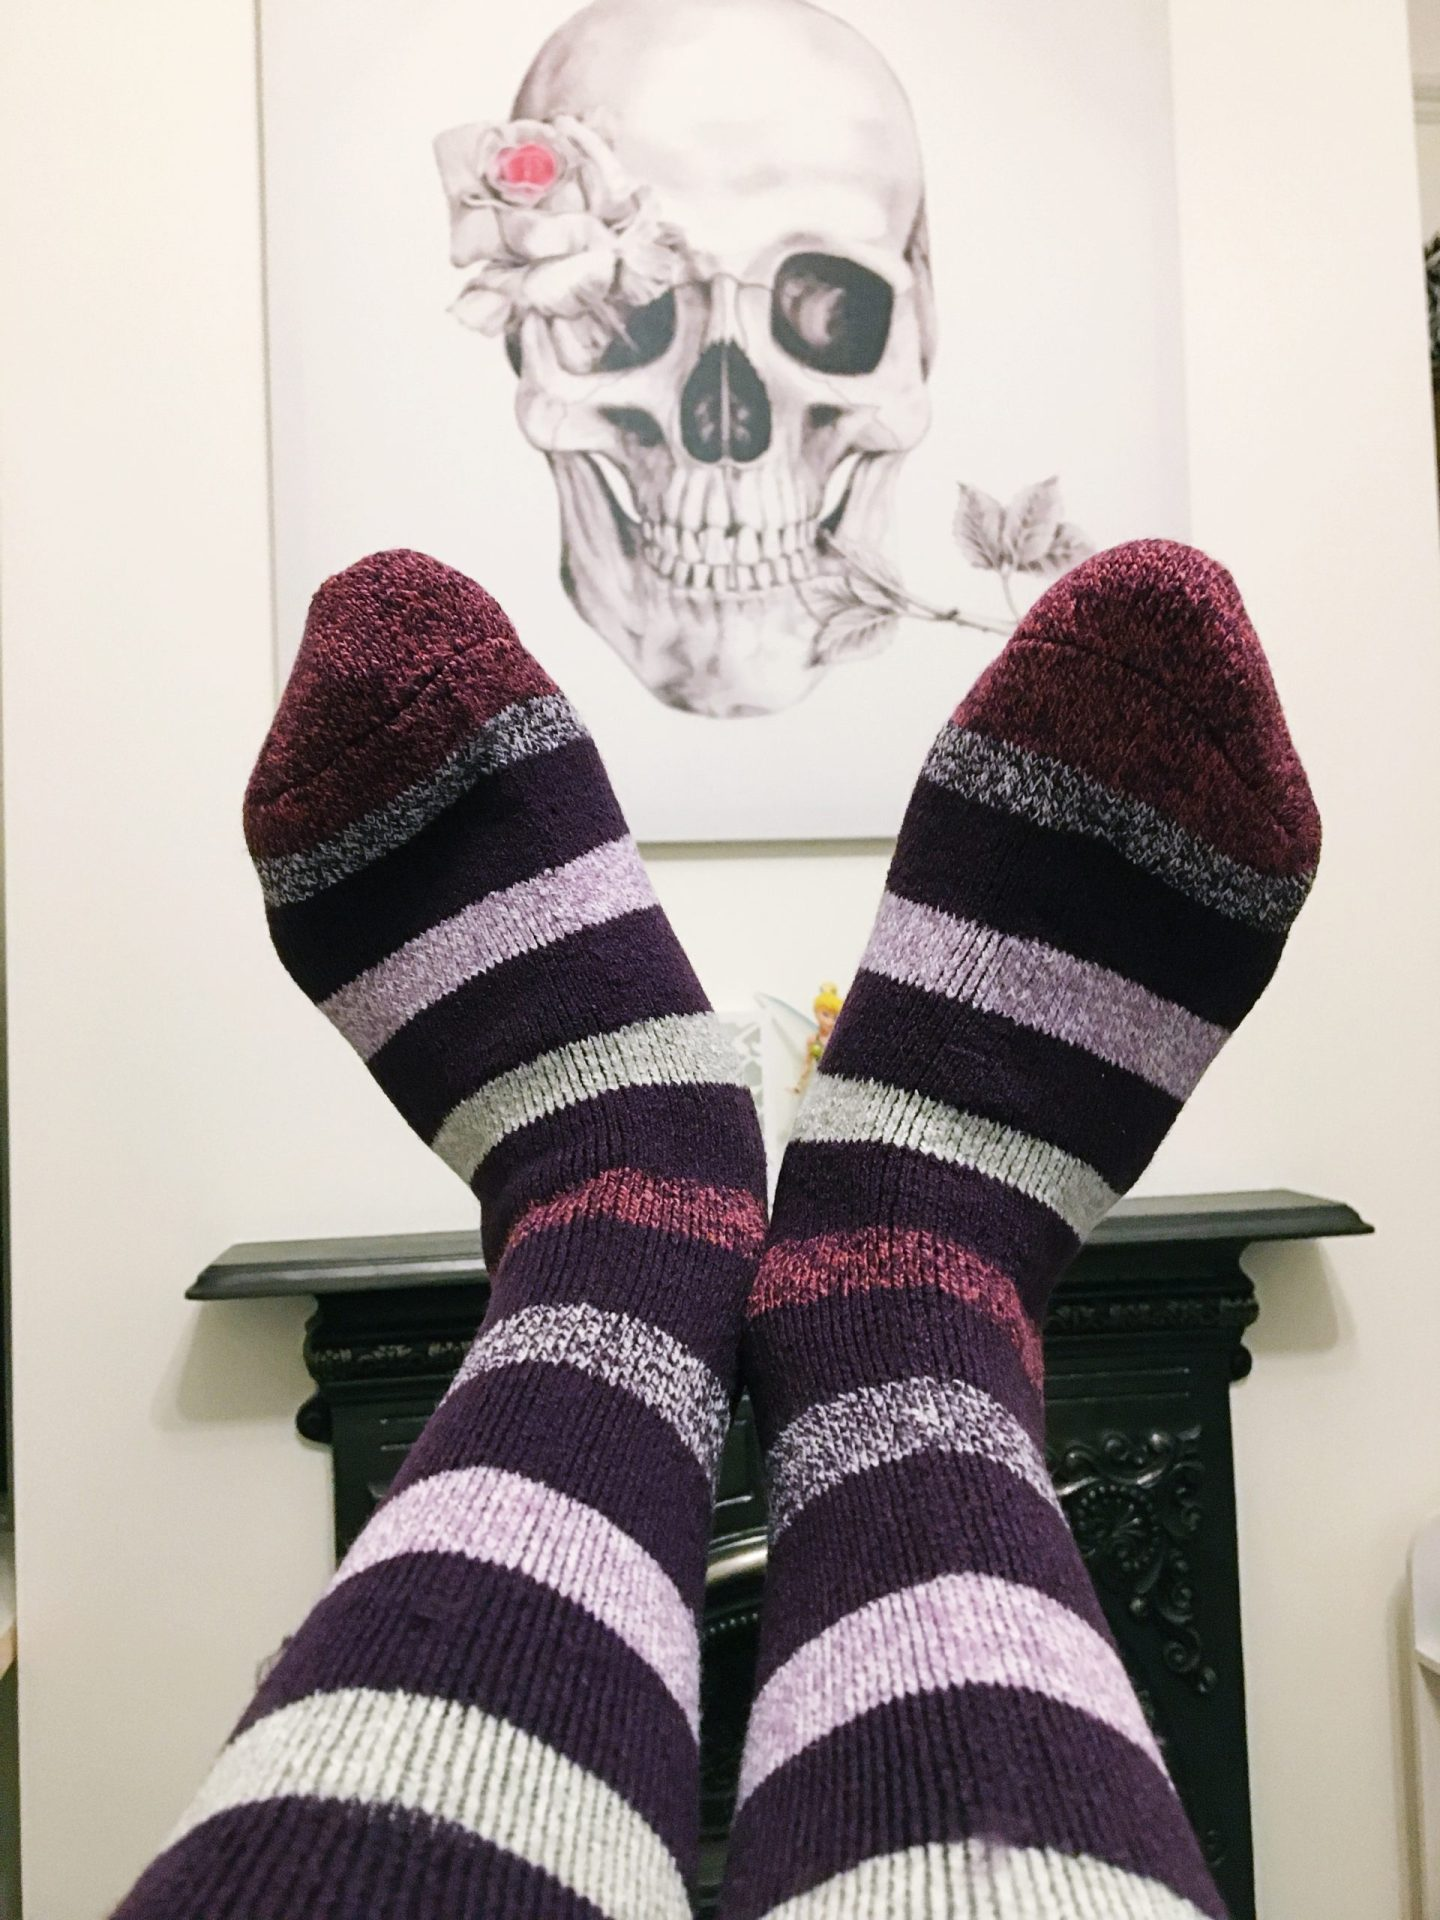 A photo of my legs out wearing the purple stripe socks with my fireplace and skull canvas in the background.